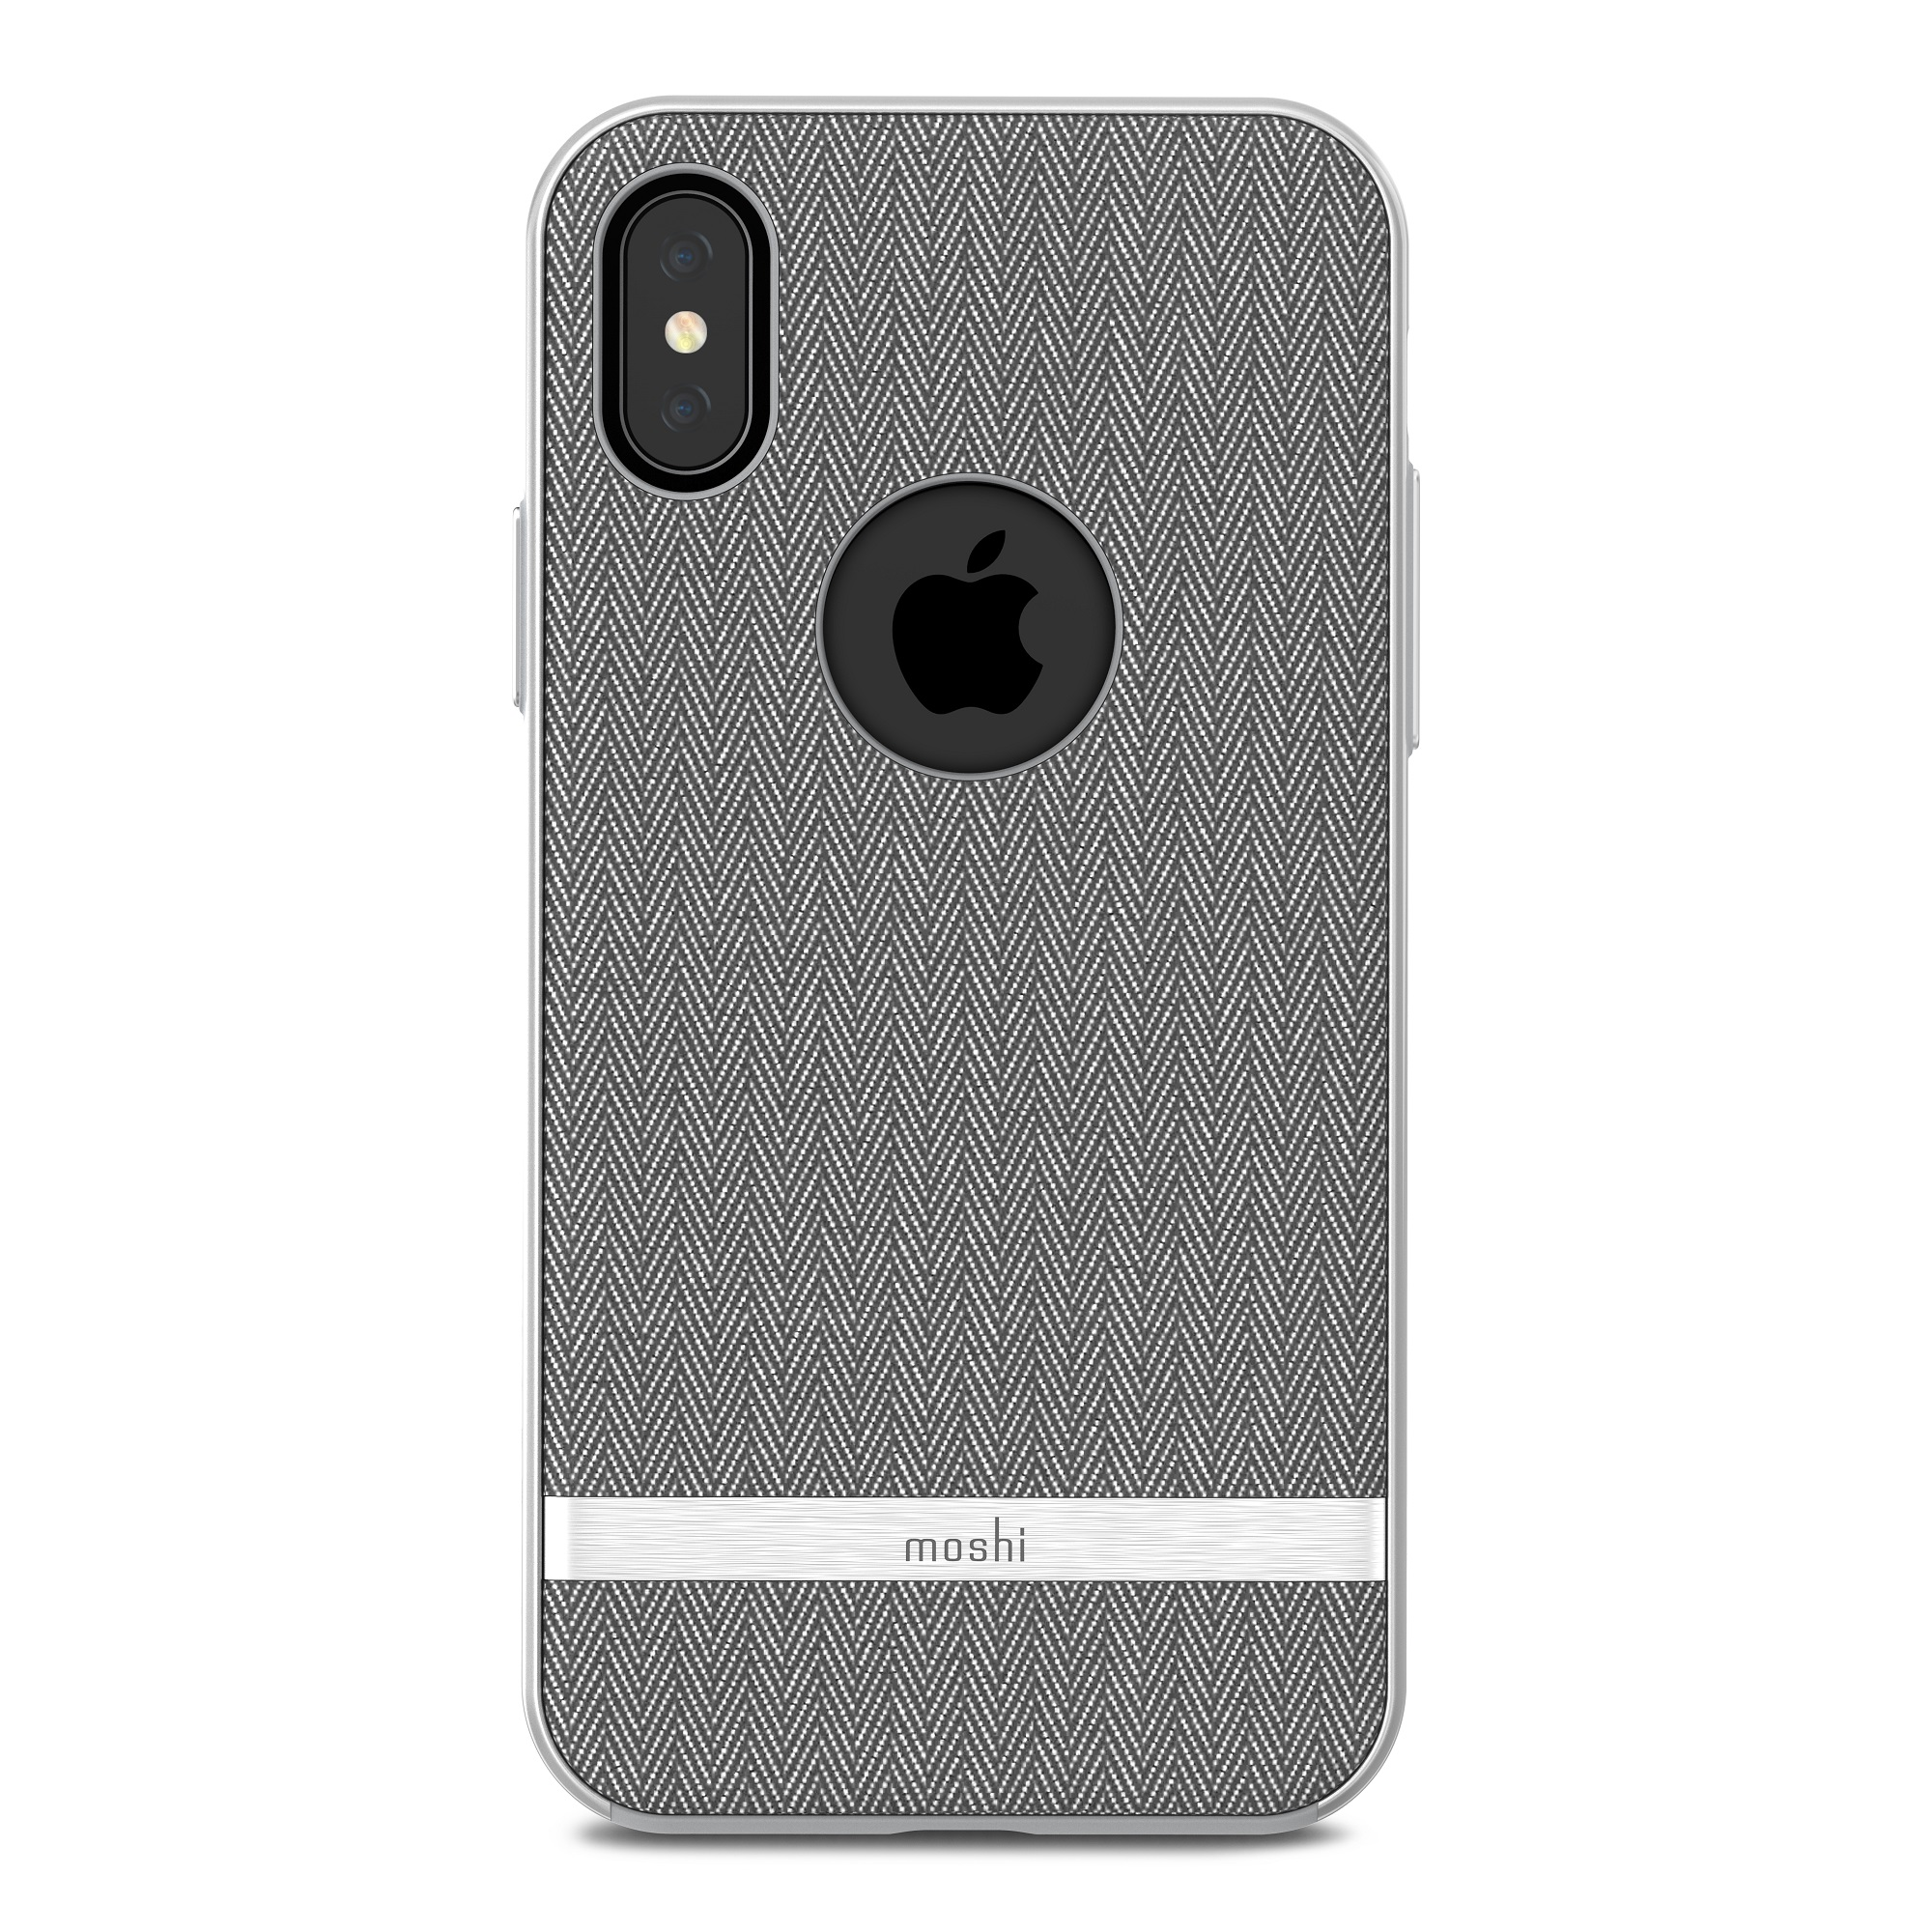 Moshi Vesta Case for iPhone XS/X